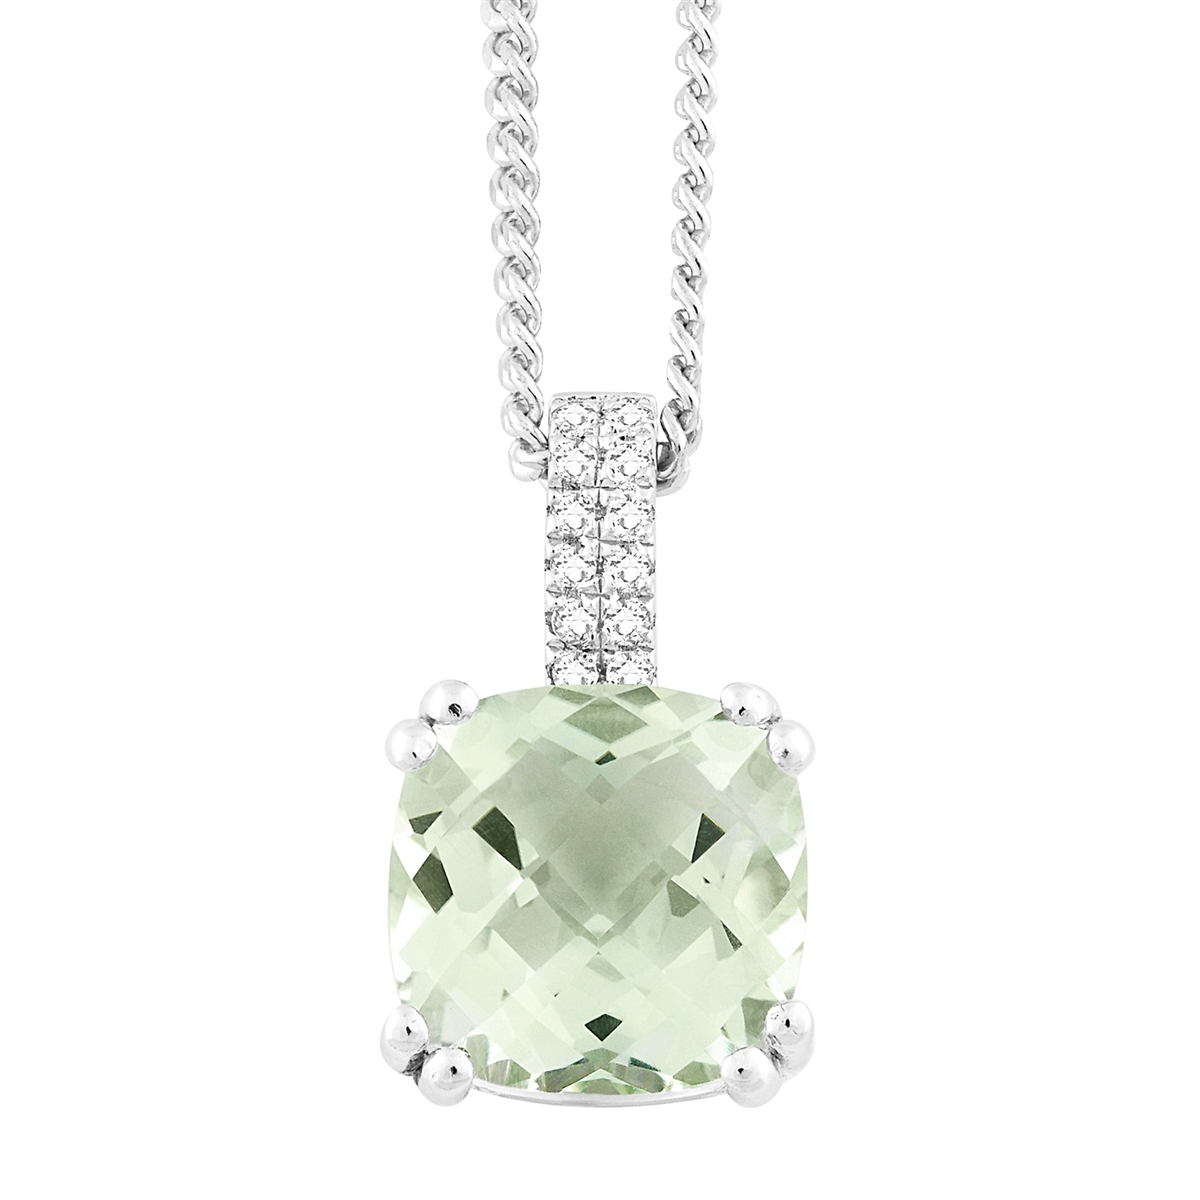 quartz silver green prasiolite amethyst necklace cut index pendant sterling classic oval product pakat